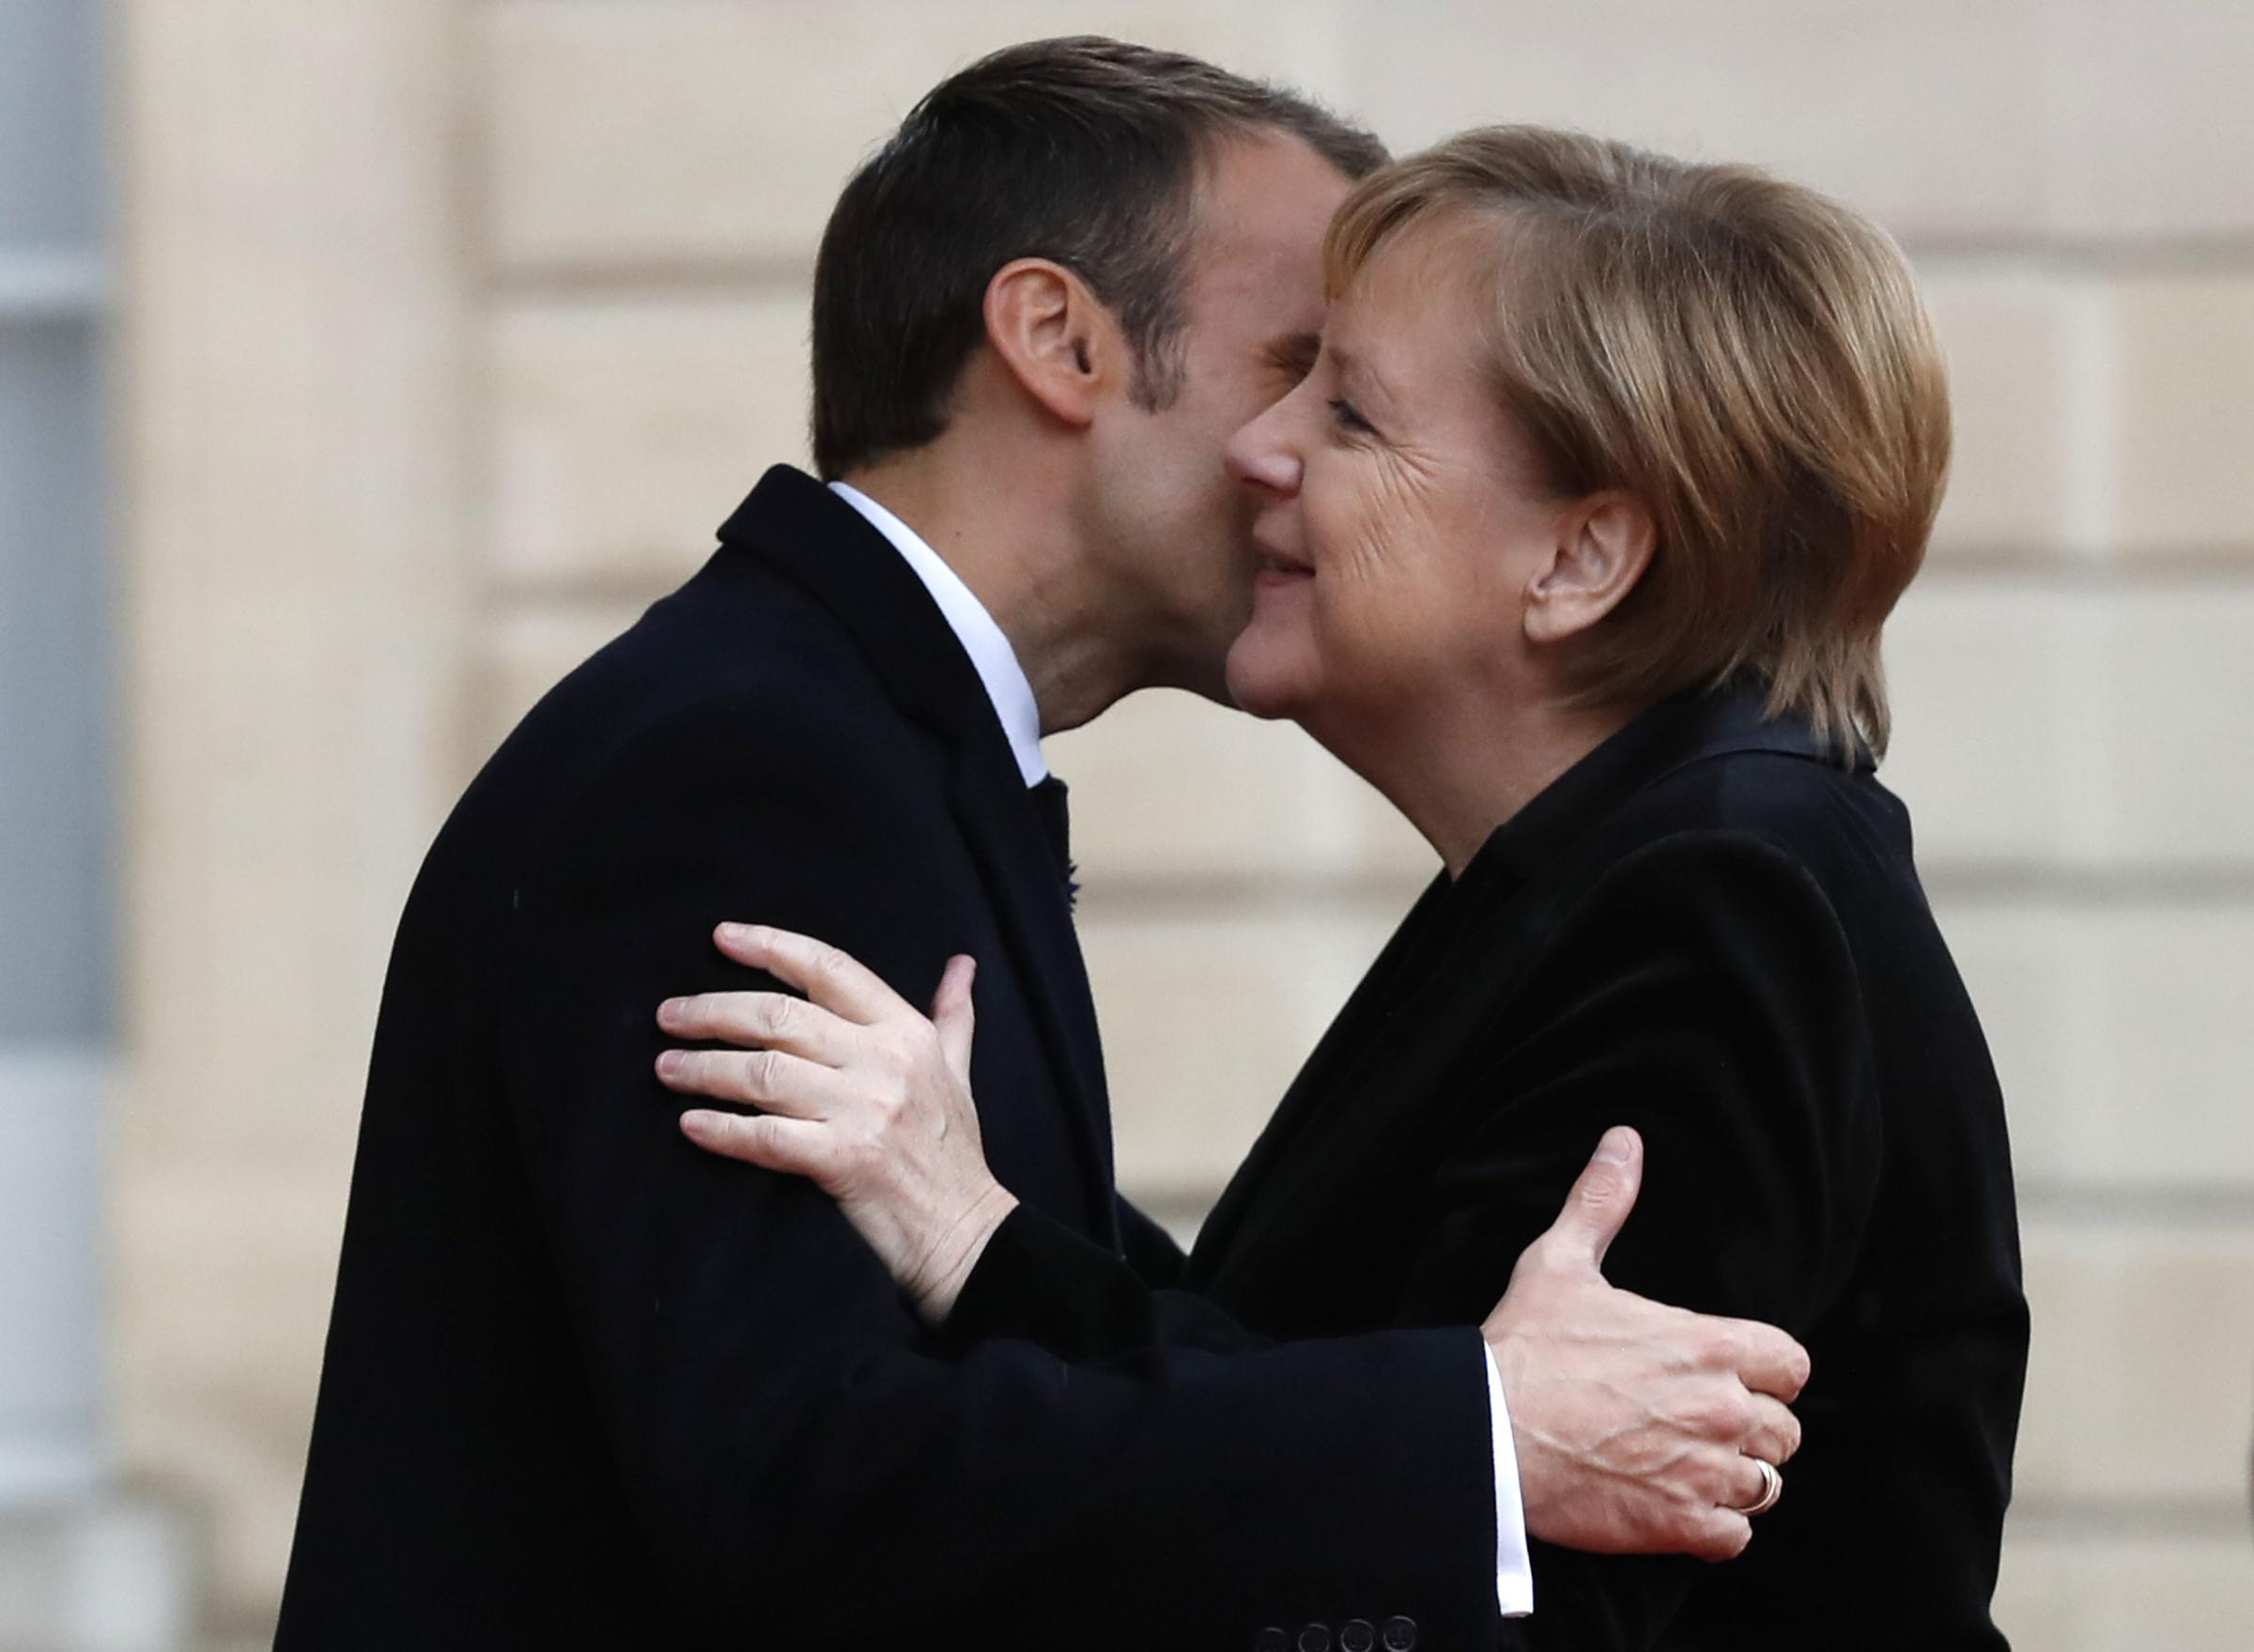 French President Emmanuel Macron hugs German Chancellor Angela Merkel in the courtyard of the Elysee Palace Sunday, Nov. 11, 2018 in Paris. International leaders are taking place in a ceremony in Paris on Sunday at mark the 100th anniversary of the end of